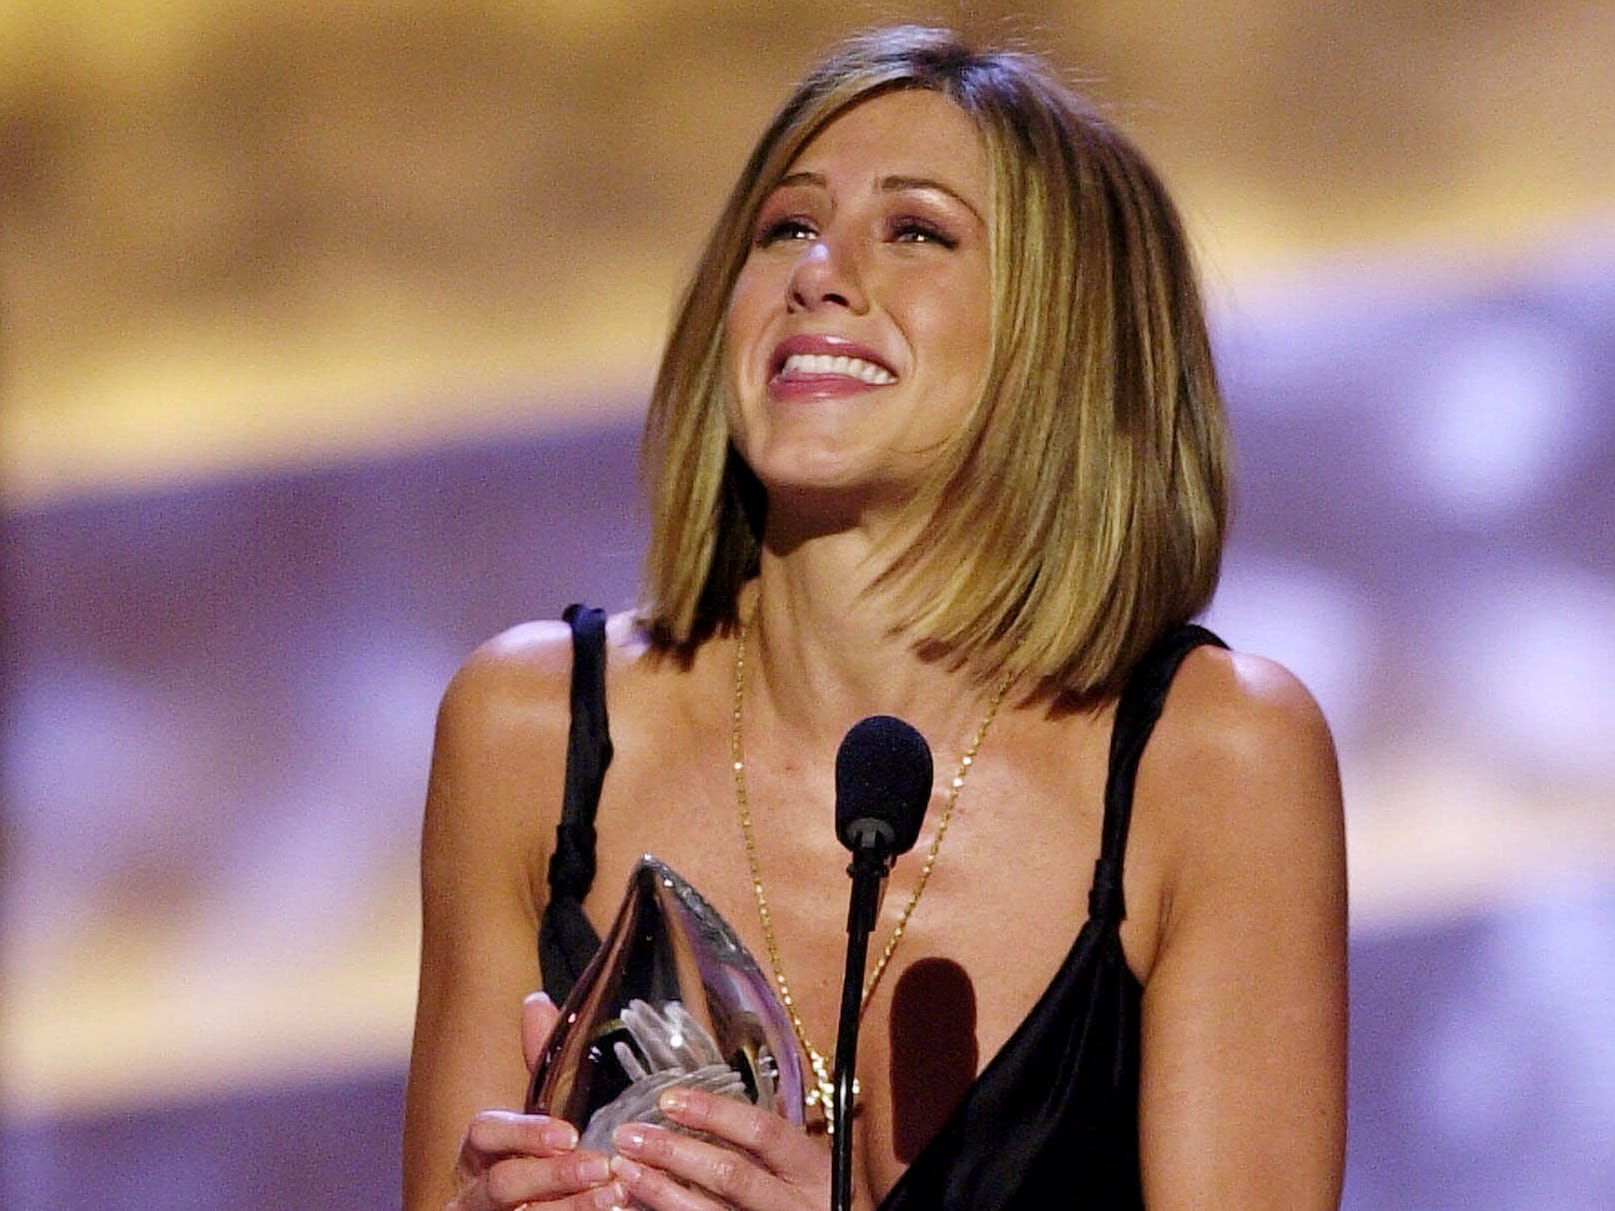 Aniston began 2001 with a People's Choice Award for favorite female television performer.